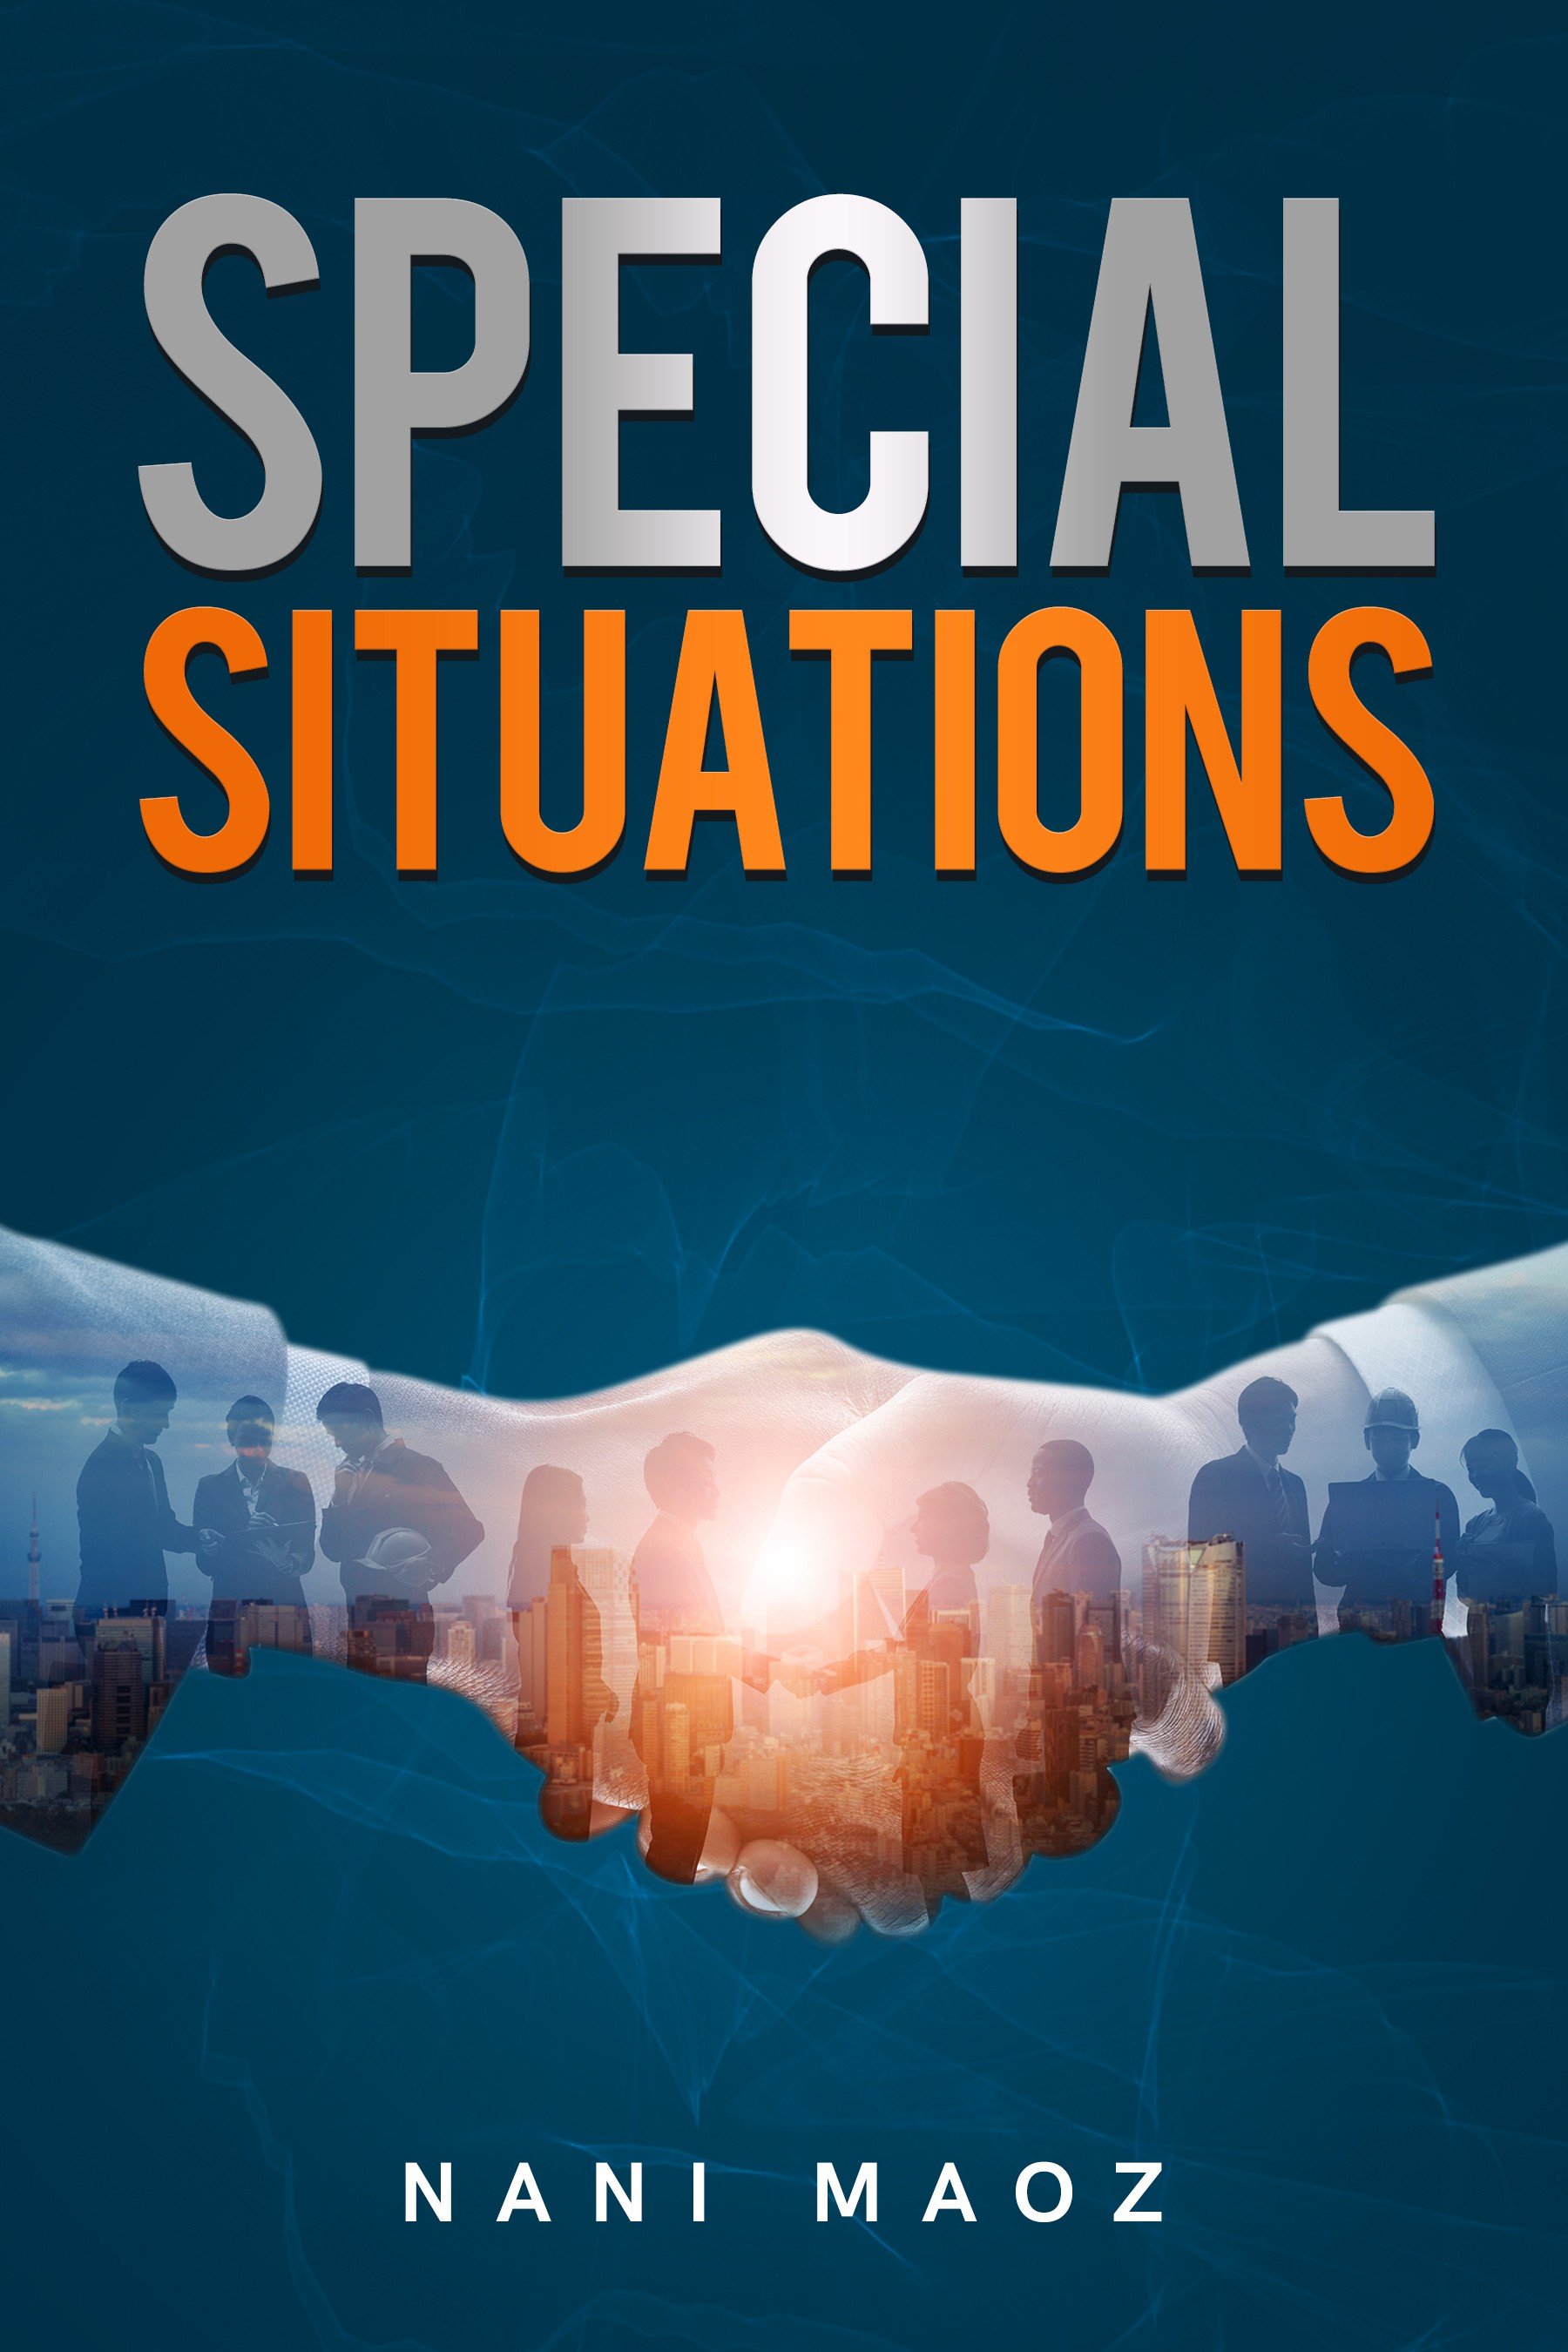 Dramatic book cover for a book about inside stories on distressed companies in U.S and Europe